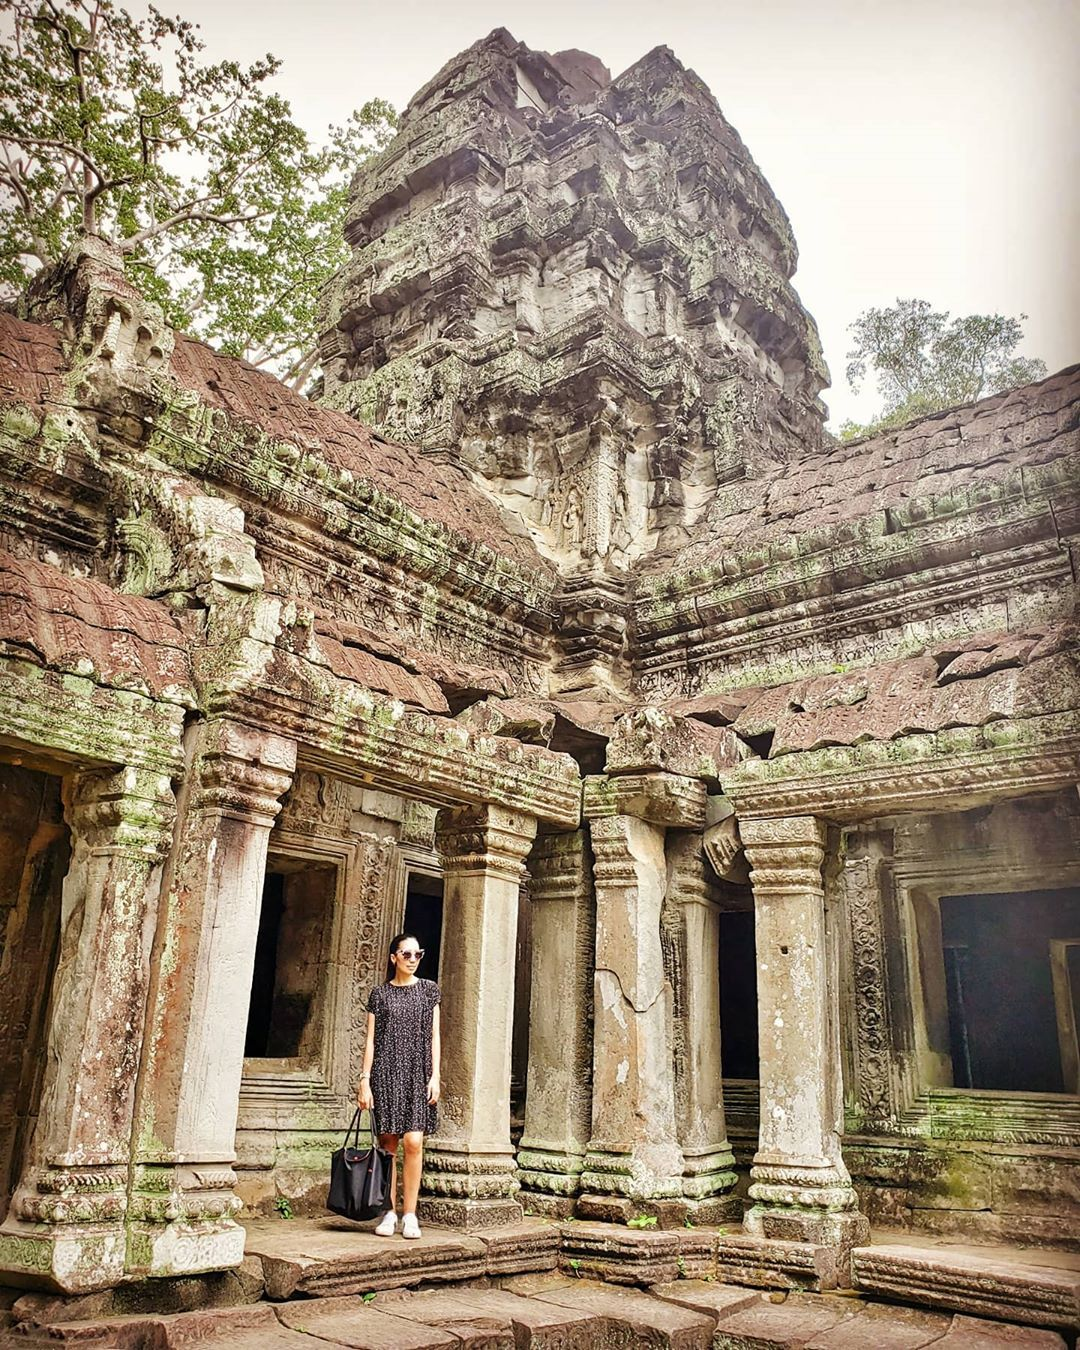 Plans weren't cancelled, just postponed 📸 . . . #siemreap #siemreapmoments #cambodia #regram #lifestyle #wanderlust #travel #travelphotography #instagram #instadaily #happy #me #travelblogger #world #travelling #travelingram #instatravel #travellife #trip #follow #summer #traveling #travelgram #photography #wonderful_places #travelblog #tourist #tourism #instagood #iamtb